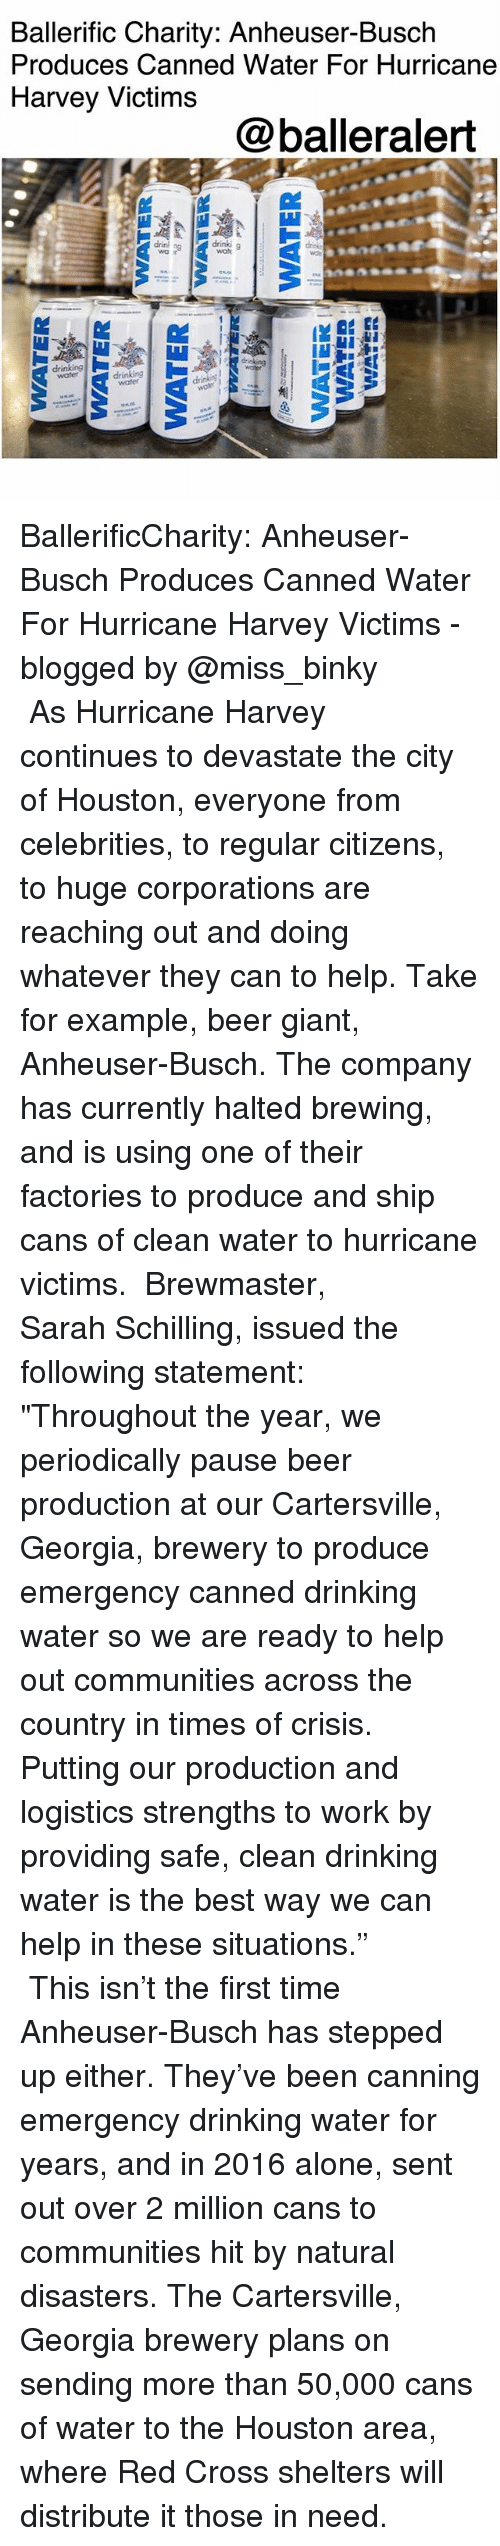 """Being Alone, Beer, and Drinking: Ballerific Charity: Anheuser-Busch  Produces Canned Water For Hurricane  Harvey Victims  @balleralert  drin  drinking  water BallerificCharity: Anheuser-Busch Produces Canned Water For Hurricane Harvey Victims -blogged by @miss_binky ⠀⠀⠀⠀⠀⠀⠀ ⠀⠀⠀⠀⠀⠀⠀ As Hurricane Harvey continues to devastate the city of Houston, everyone from celebrities, to regular citizens, to huge corporations are reaching out and doing whatever they can to help. Take for example, beer giant, Anheuser-Busch. The company has currently halted brewing, and is using one of their factories to produce and ship cans of clean water to hurricane victims. ⠀⠀⠀⠀⠀⠀⠀ Brewmaster, Sarah Schilling, issued the following statement: ⠀⠀⠀⠀⠀⠀⠀ """"Throughout the year, we periodically pause beer production at our Cartersville, Georgia, brewery to produce emergency canned drinking water so we are ready to help out communities across the country in times of crisis. Putting our production and logistics strengths to work by providing safe, clean drinking water is the best way we can help in these situations."""" ⠀⠀⠀⠀⠀⠀⠀ ⠀⠀⠀⠀⠀⠀⠀ This isn't the first time Anheuser-Busch has stepped up either. They've been canning emergency drinking water for years, and in 2016 alone, sent out over 2 million cans to communities hit by natural disasters. The Cartersville, Georgia brewery plans on sending more than 50,000 cans of water to the Houston area, where Red Cross shelters will distribute it those in need."""